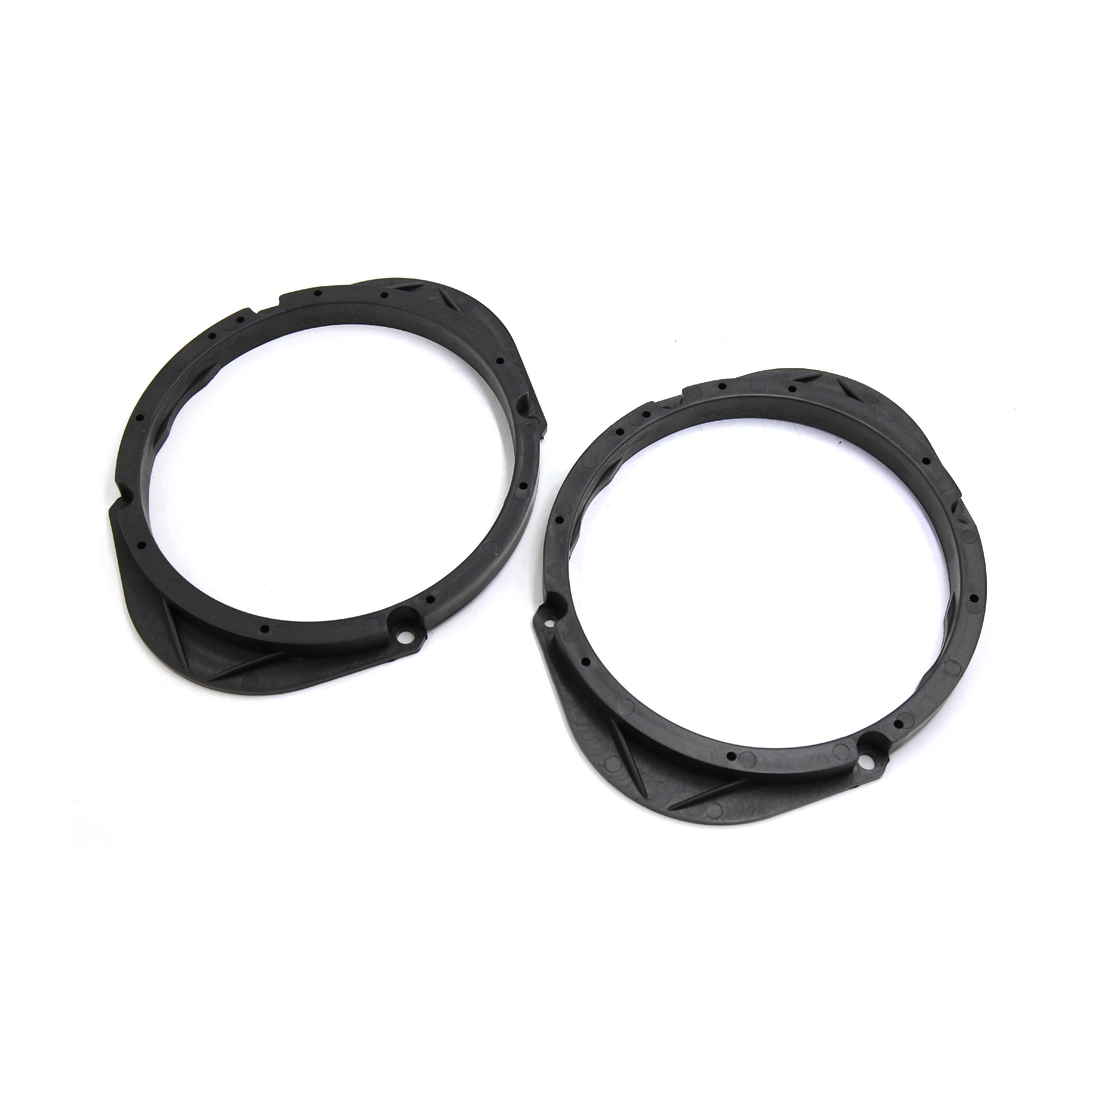 2Pcs Black Plastic Car Stereo Spacer Adaptor Fit for Ford Front Door Speakers